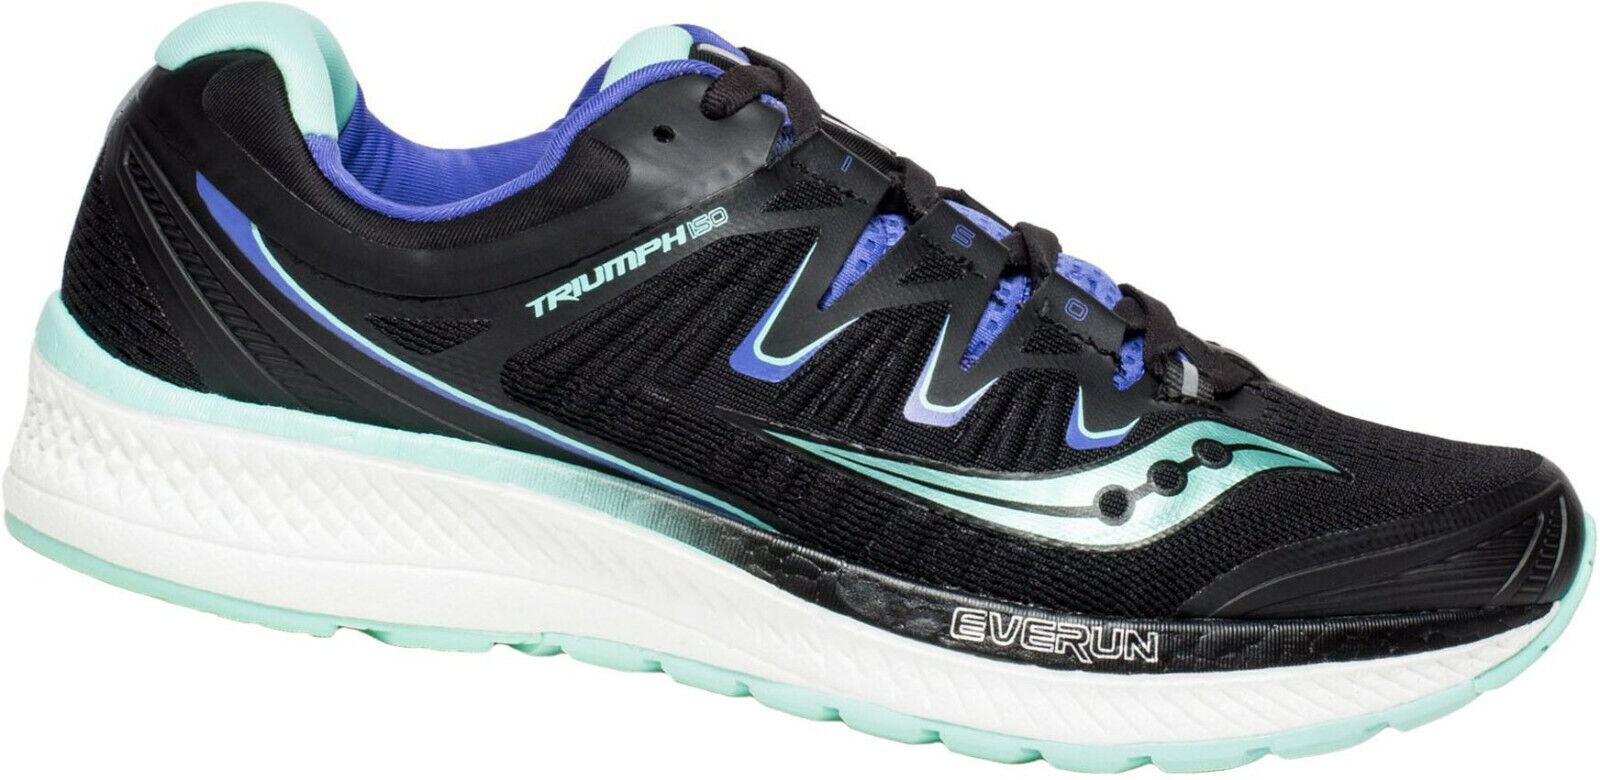 Saucony Triumph ISO 4 Womens Running shoes Size 42 Sport Fitness shoes Trainers New